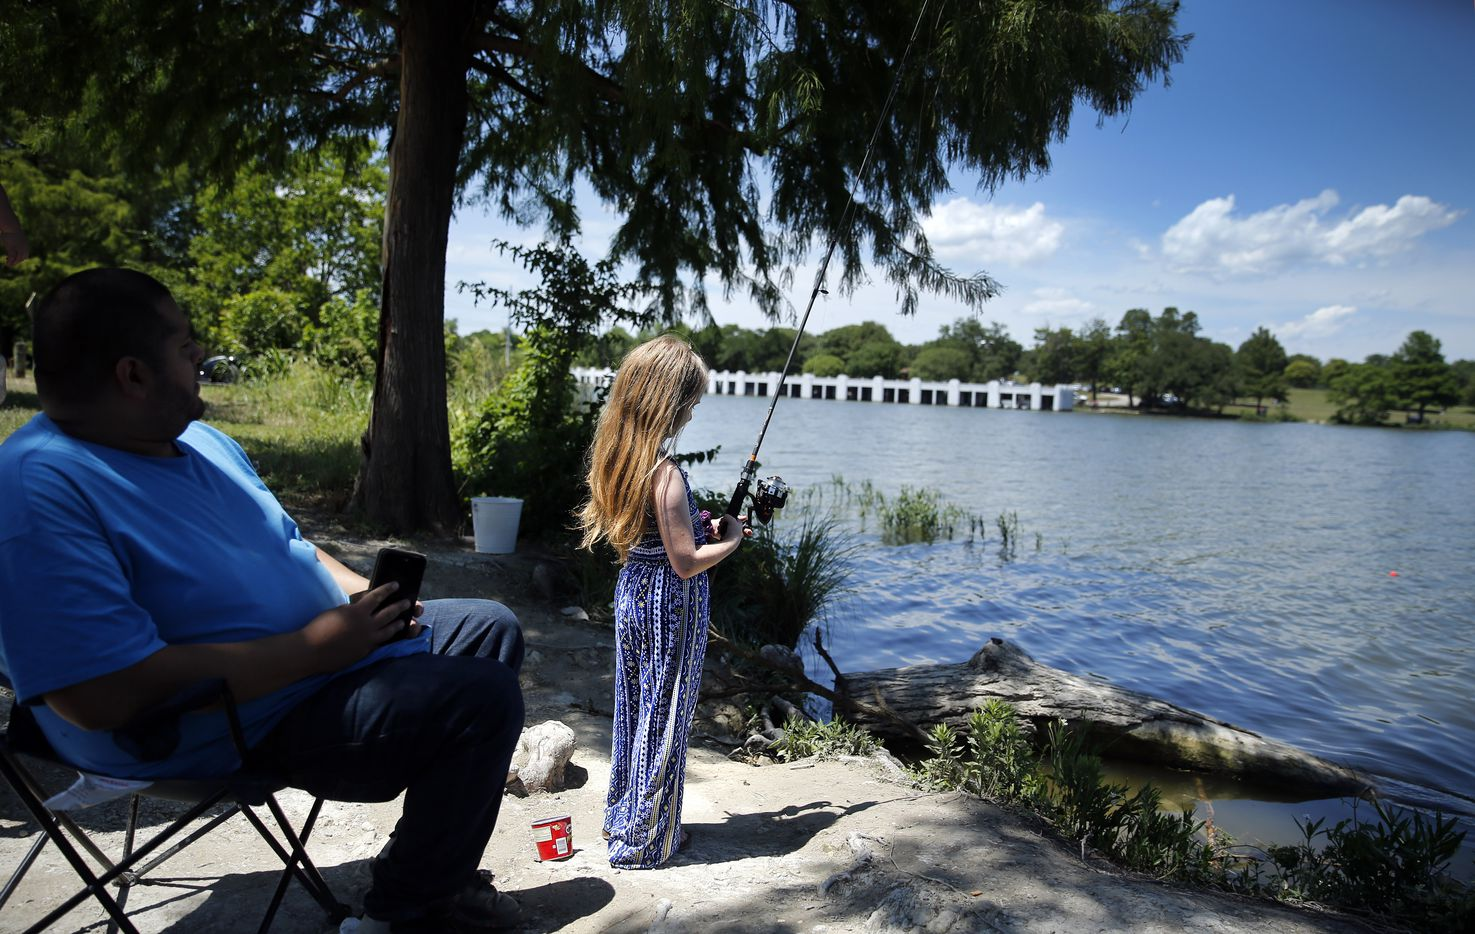 Aubrey Lawrence, 8, watches her bobber as she fishes with her family at White Rock Lake.